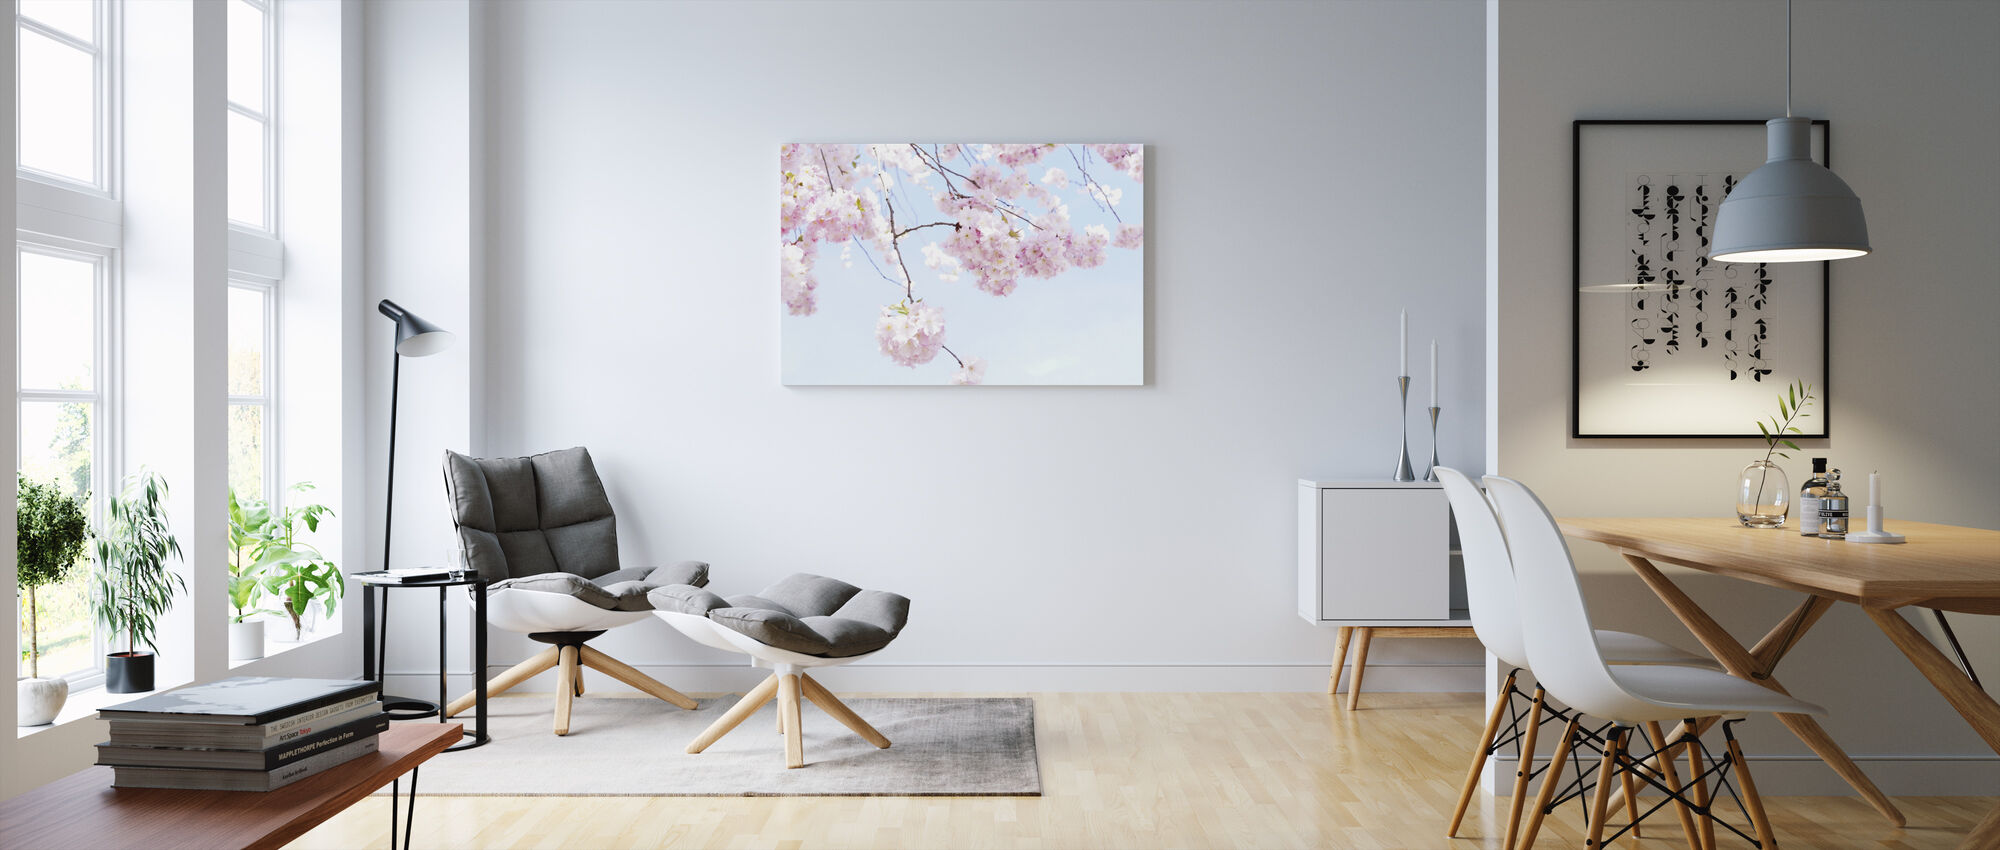 Blooming Cherry Flowers - Canvas print - Living Room